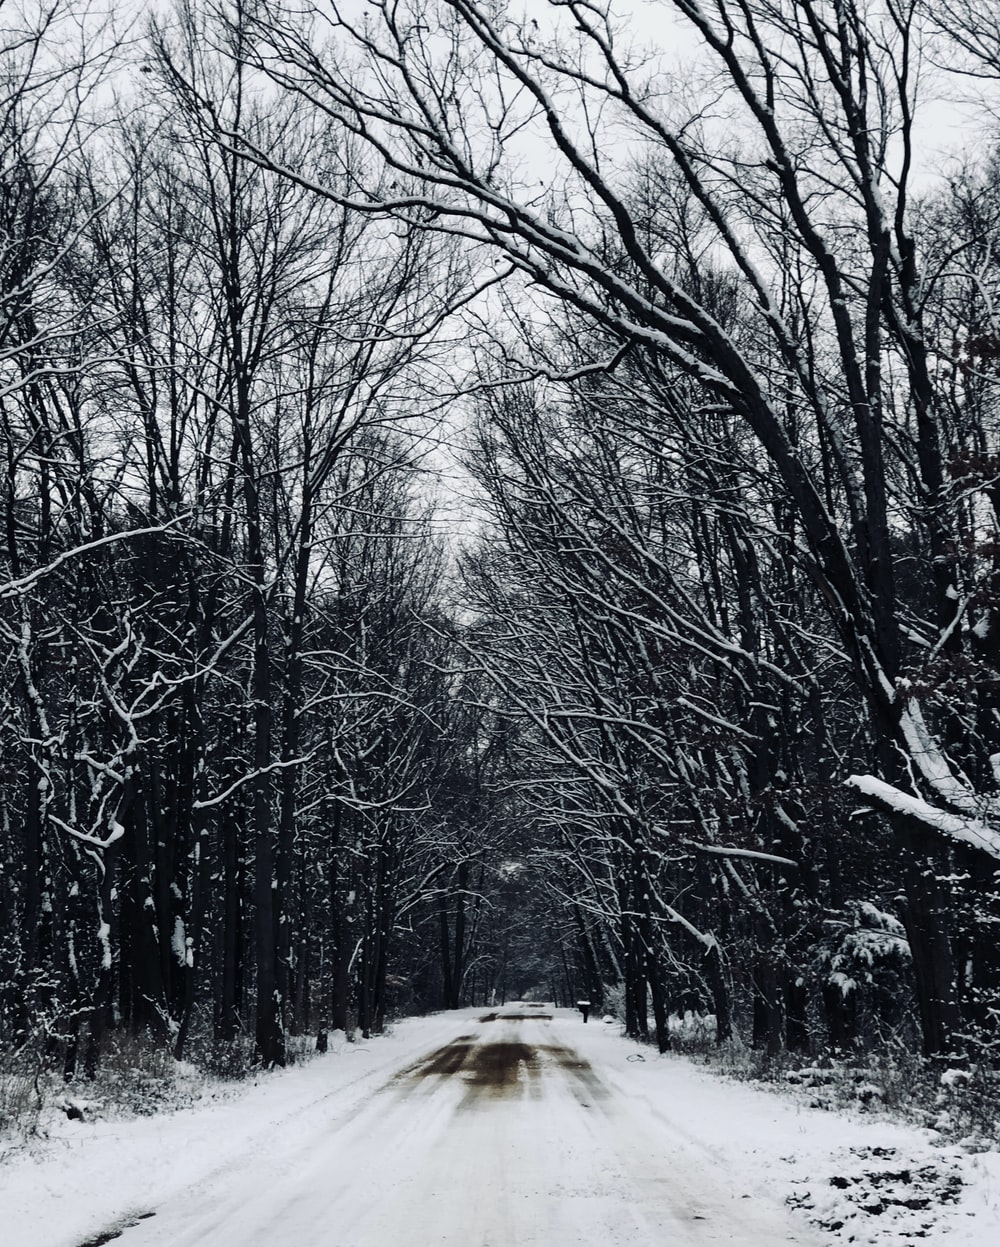 snow covered road in between on trees at daytime